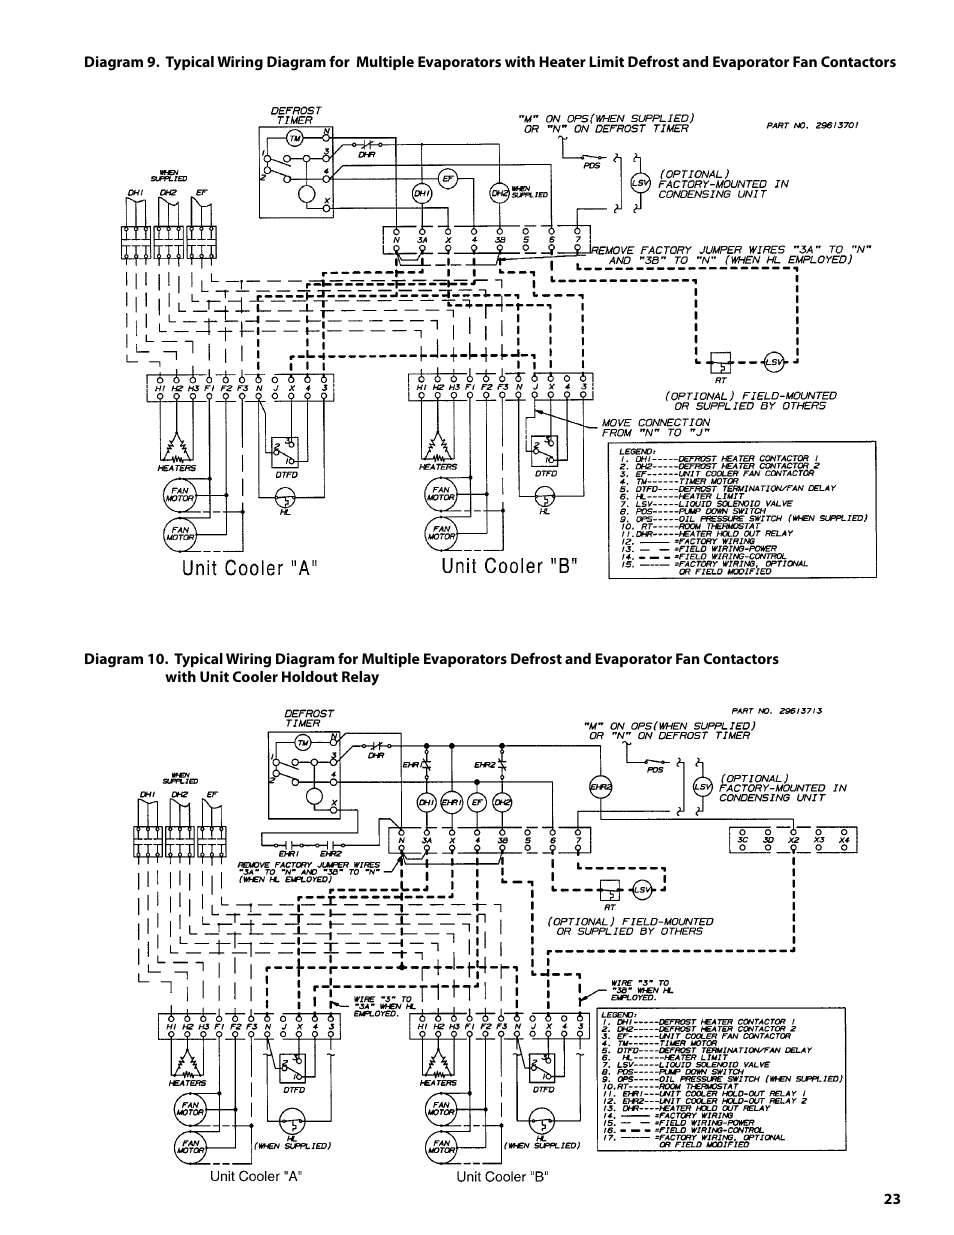 heatcraft refrigeration products condensing units h im cu page23 heatcraft refrigeration products condensing units h im cu user heatcraft condensing units wiring diagram at crackthecode.co